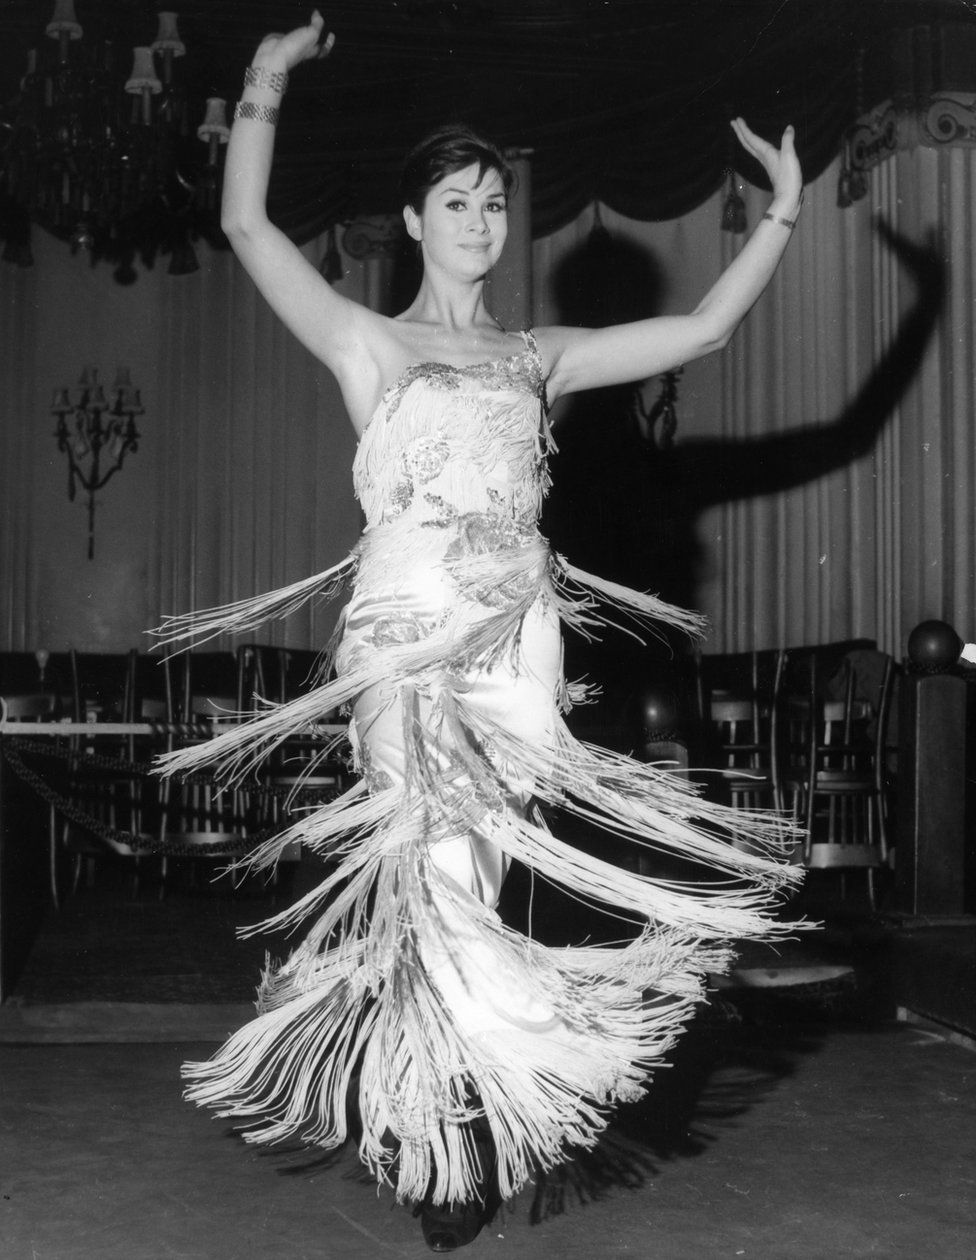 April Ashley during her song and dance act at the Astor Club, London, in 1962